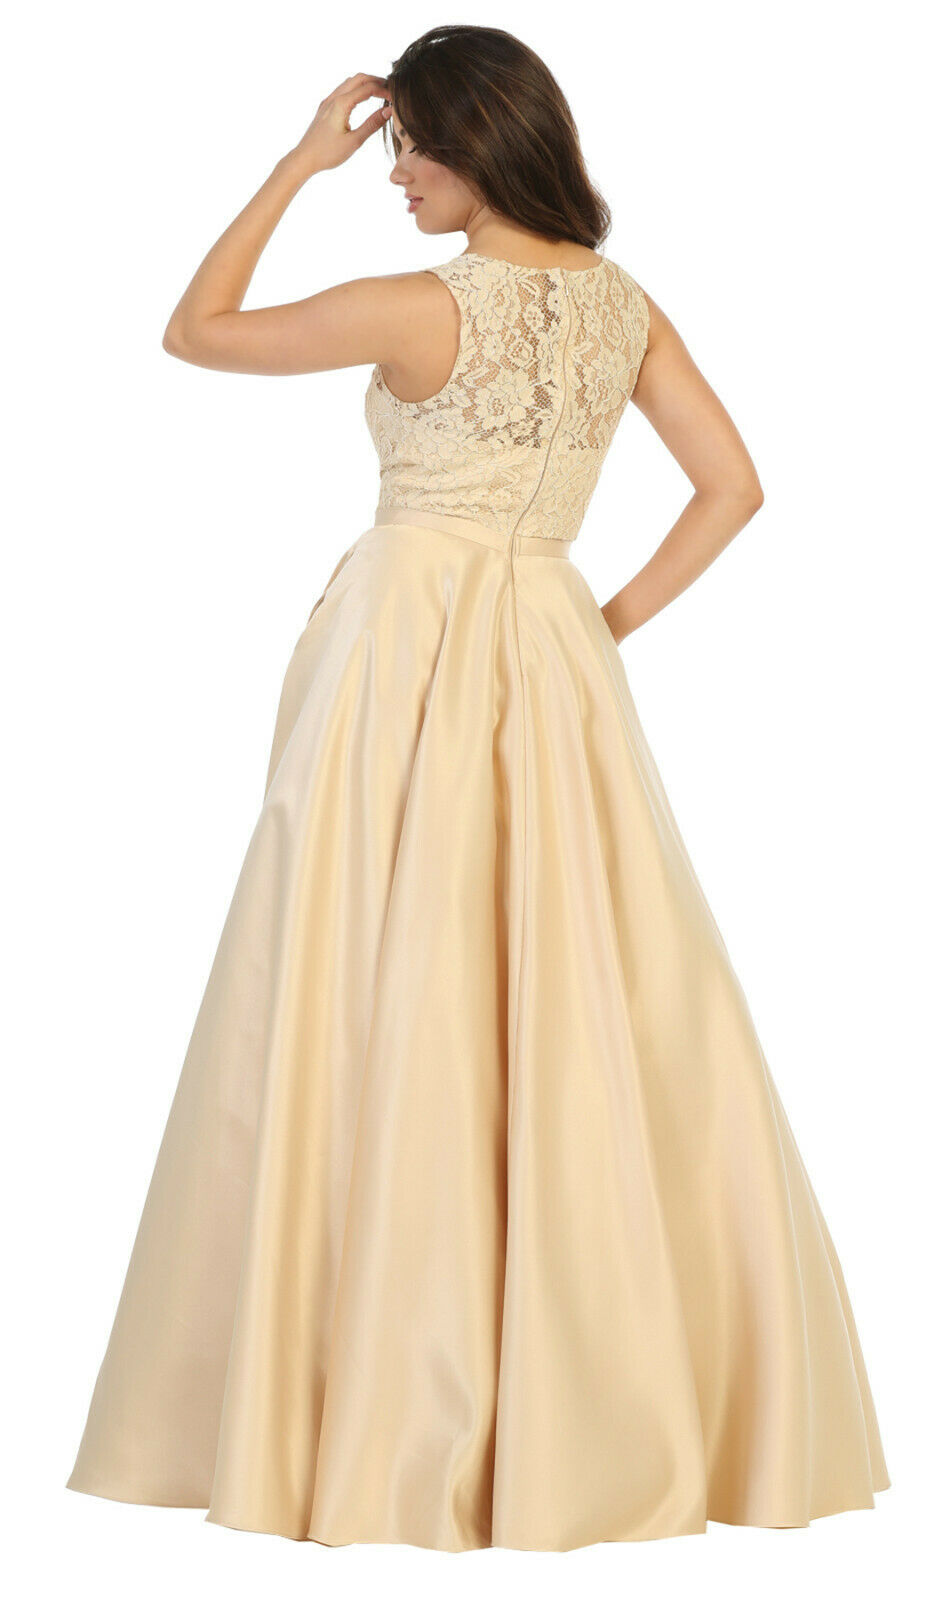 b85835e724 ... SWEET 16 A-LINED EVENING GOWN SPECIAL OCCASION FORMAL FORMAL FORMAL  DANCE PROM DRESS PAGEANT ...